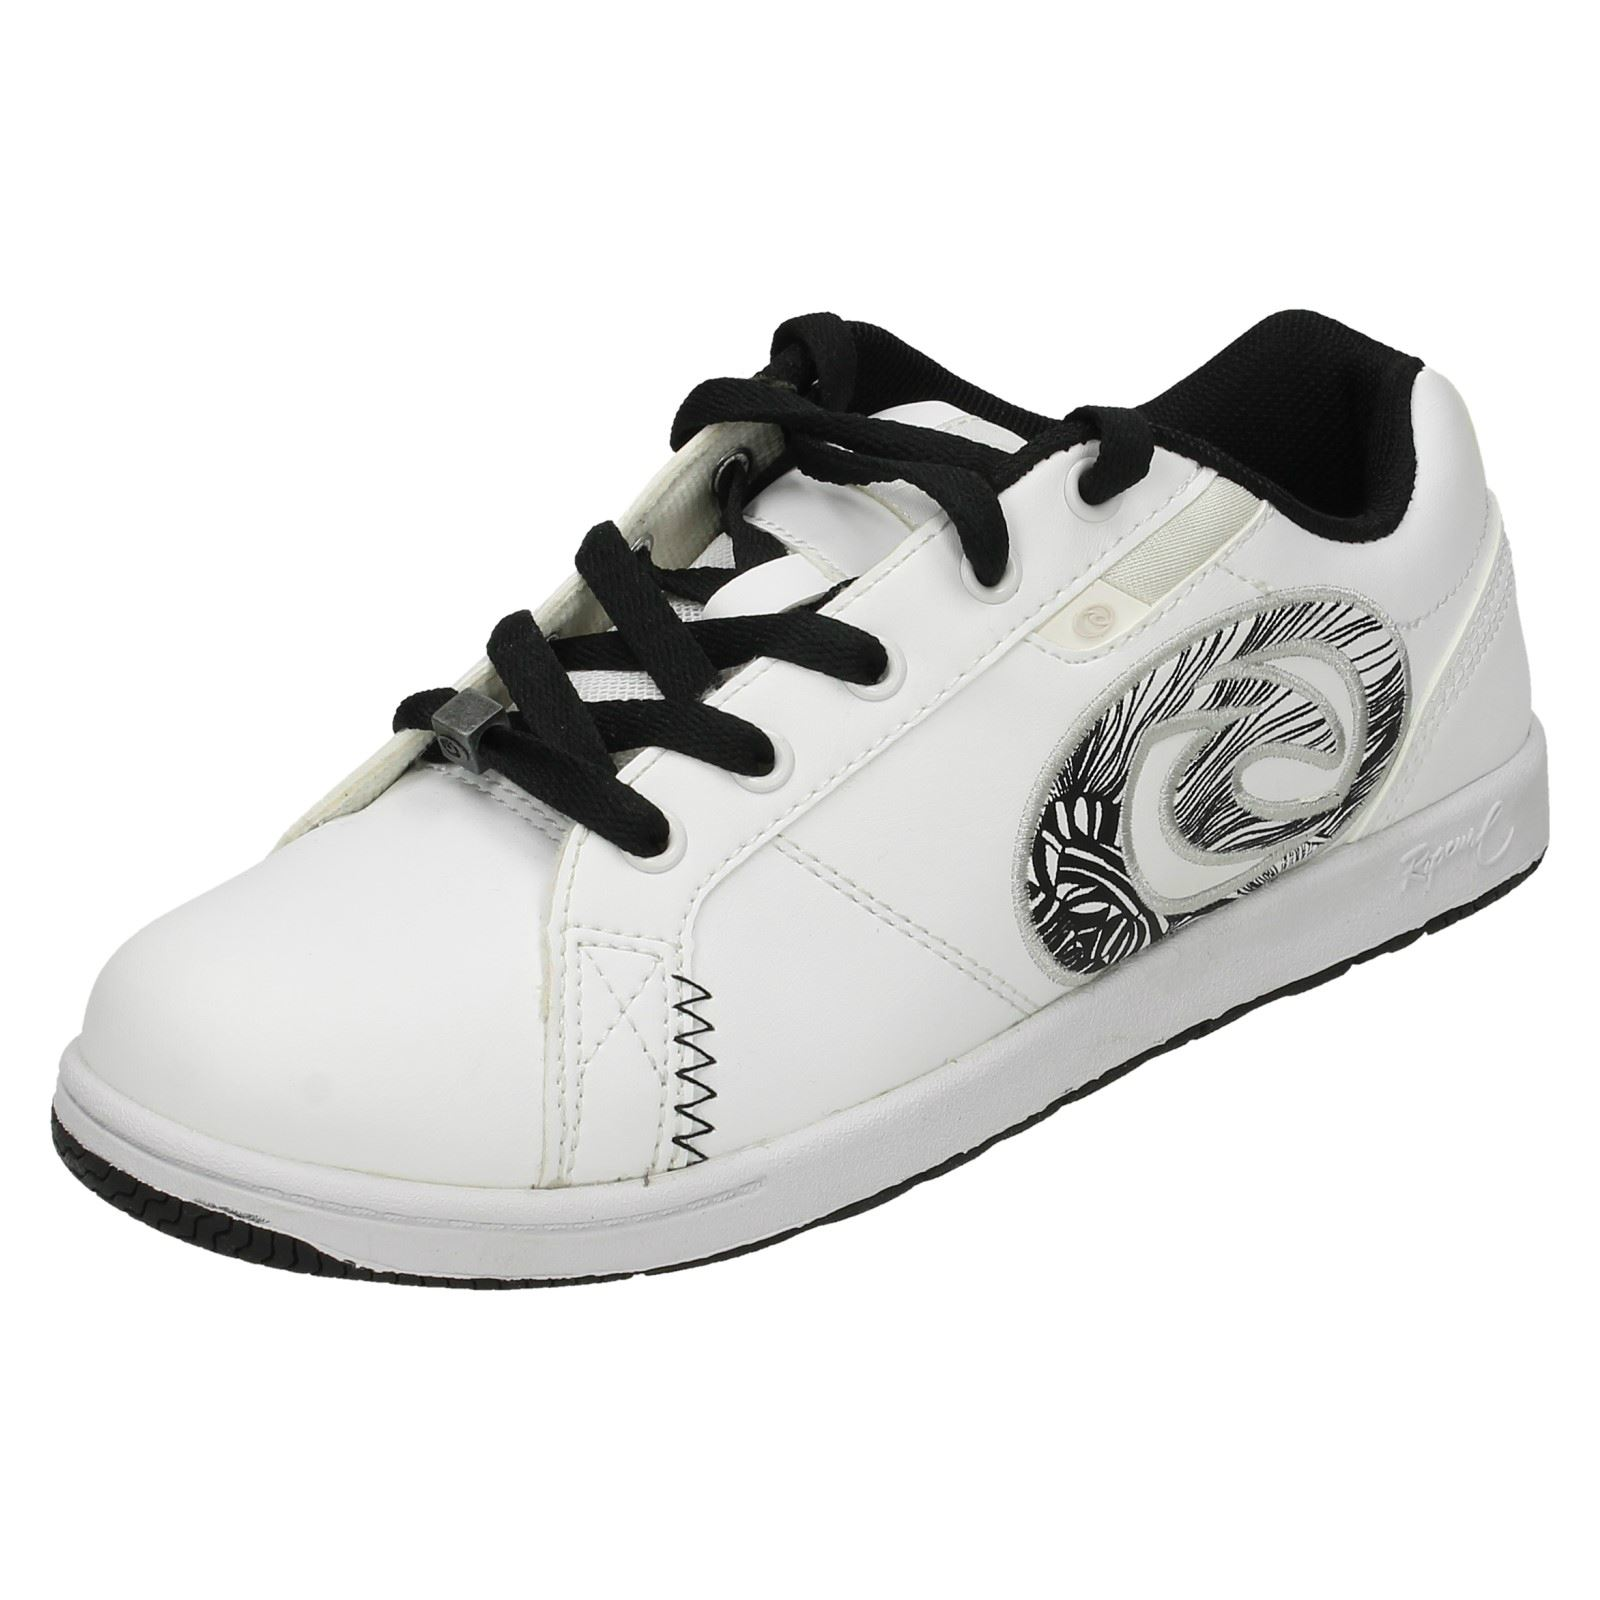 Ladies Rip Curl Trainers 'Remission TWLF09-350'